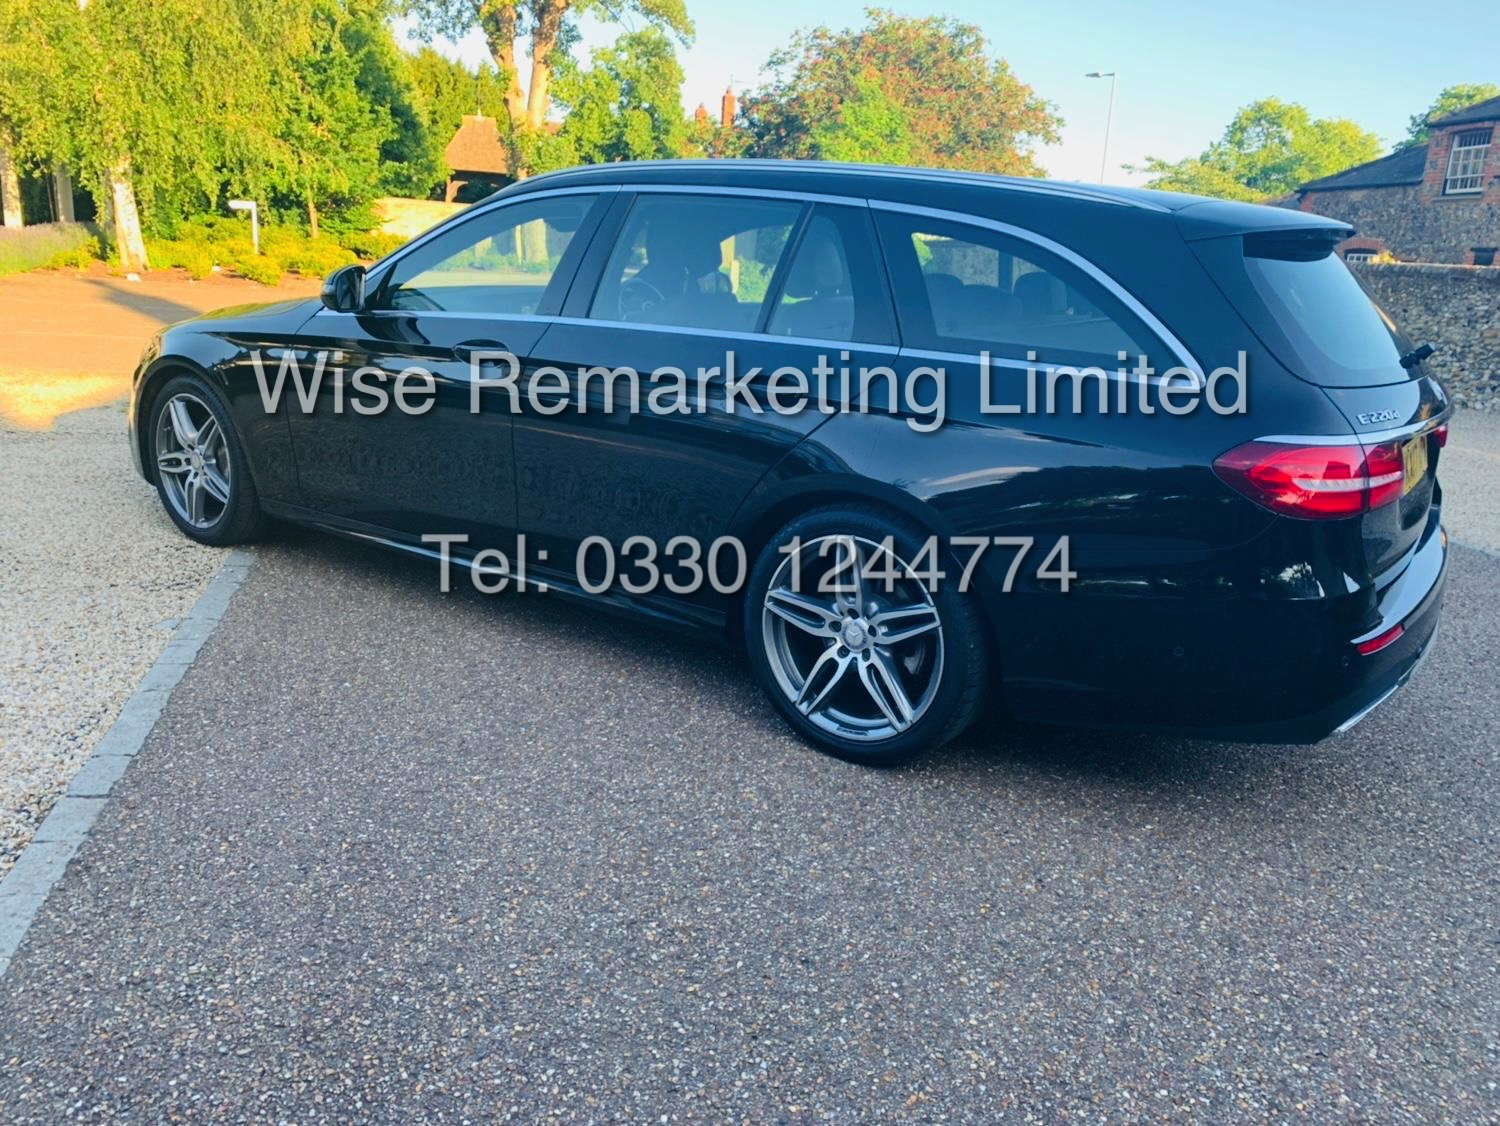 MERCEDES E CLASS ESTATE E220D AMG LINE 2017 / 9G -TRONIC / *LOW MILES* / 1 OWNER - Image 7 of 42